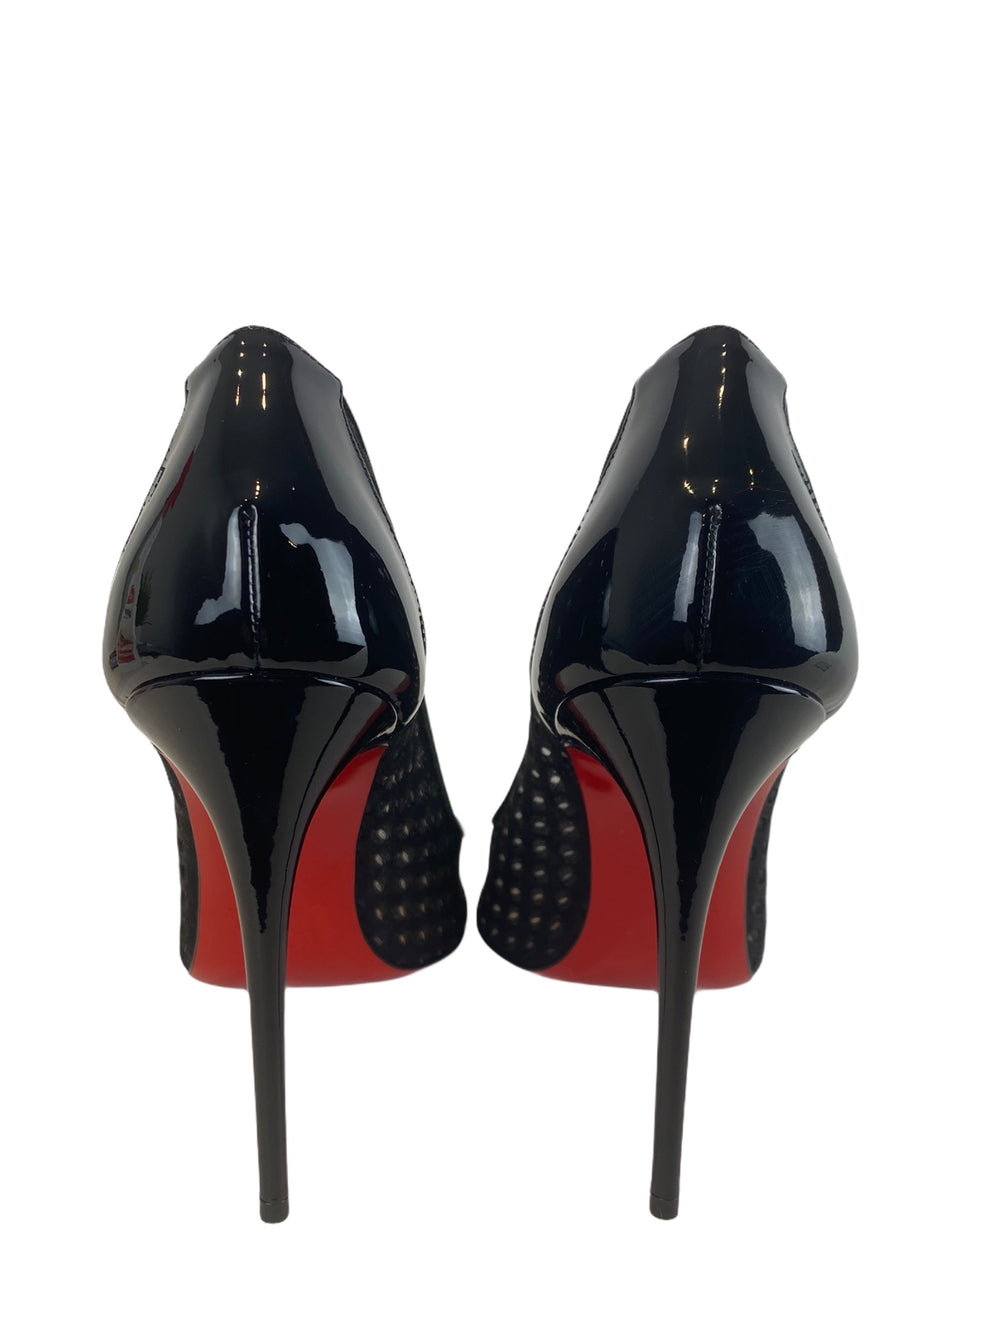 Christian Louboutin Heels - UK 6 - As Seen on Instagram 21/10/2020